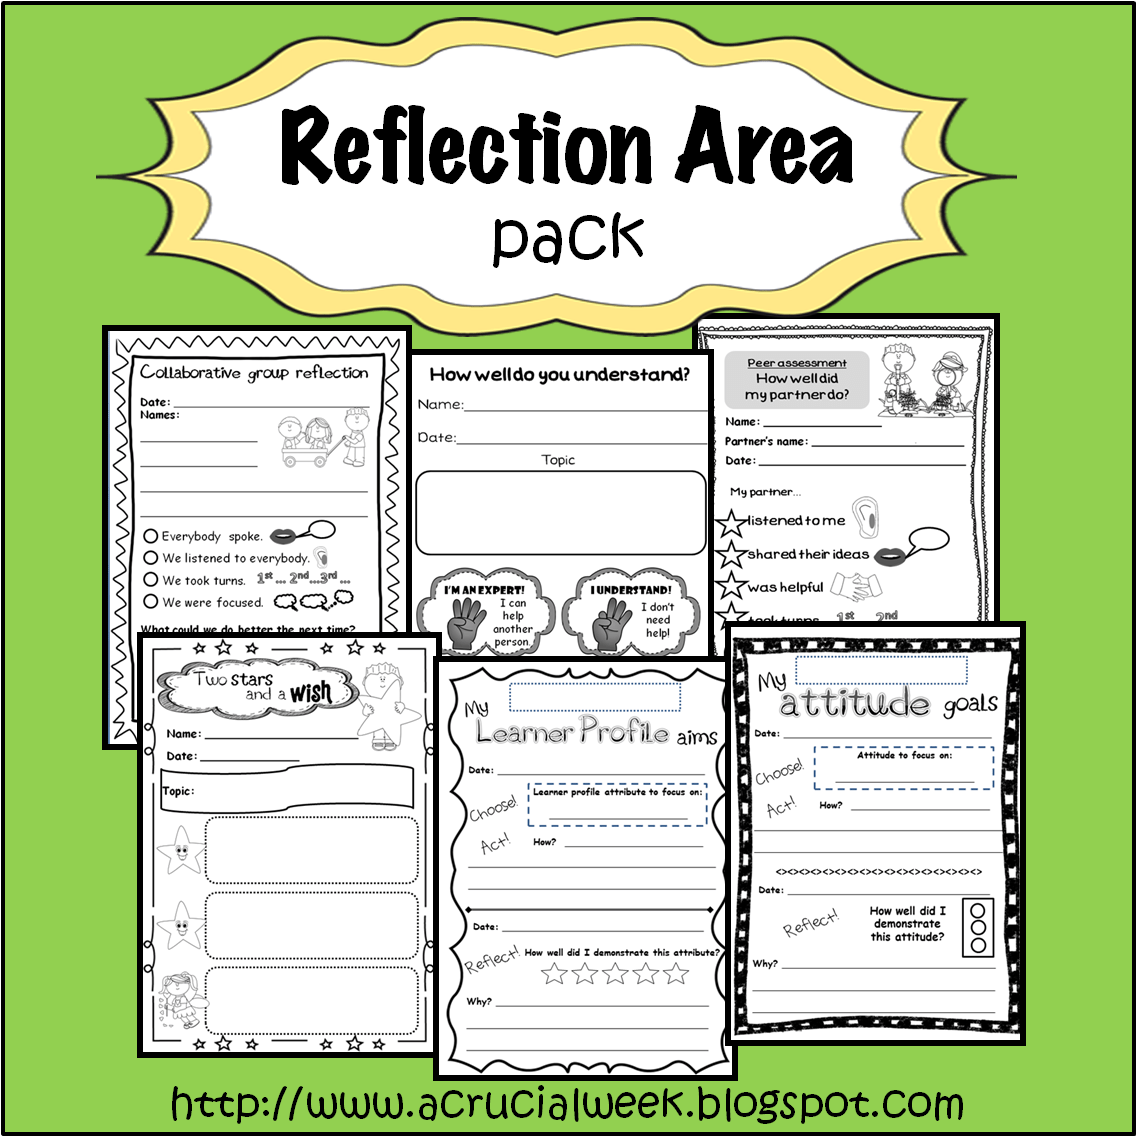 Reflection Area Pack With Peer Assessment Group Assessment General Reflections And Goal